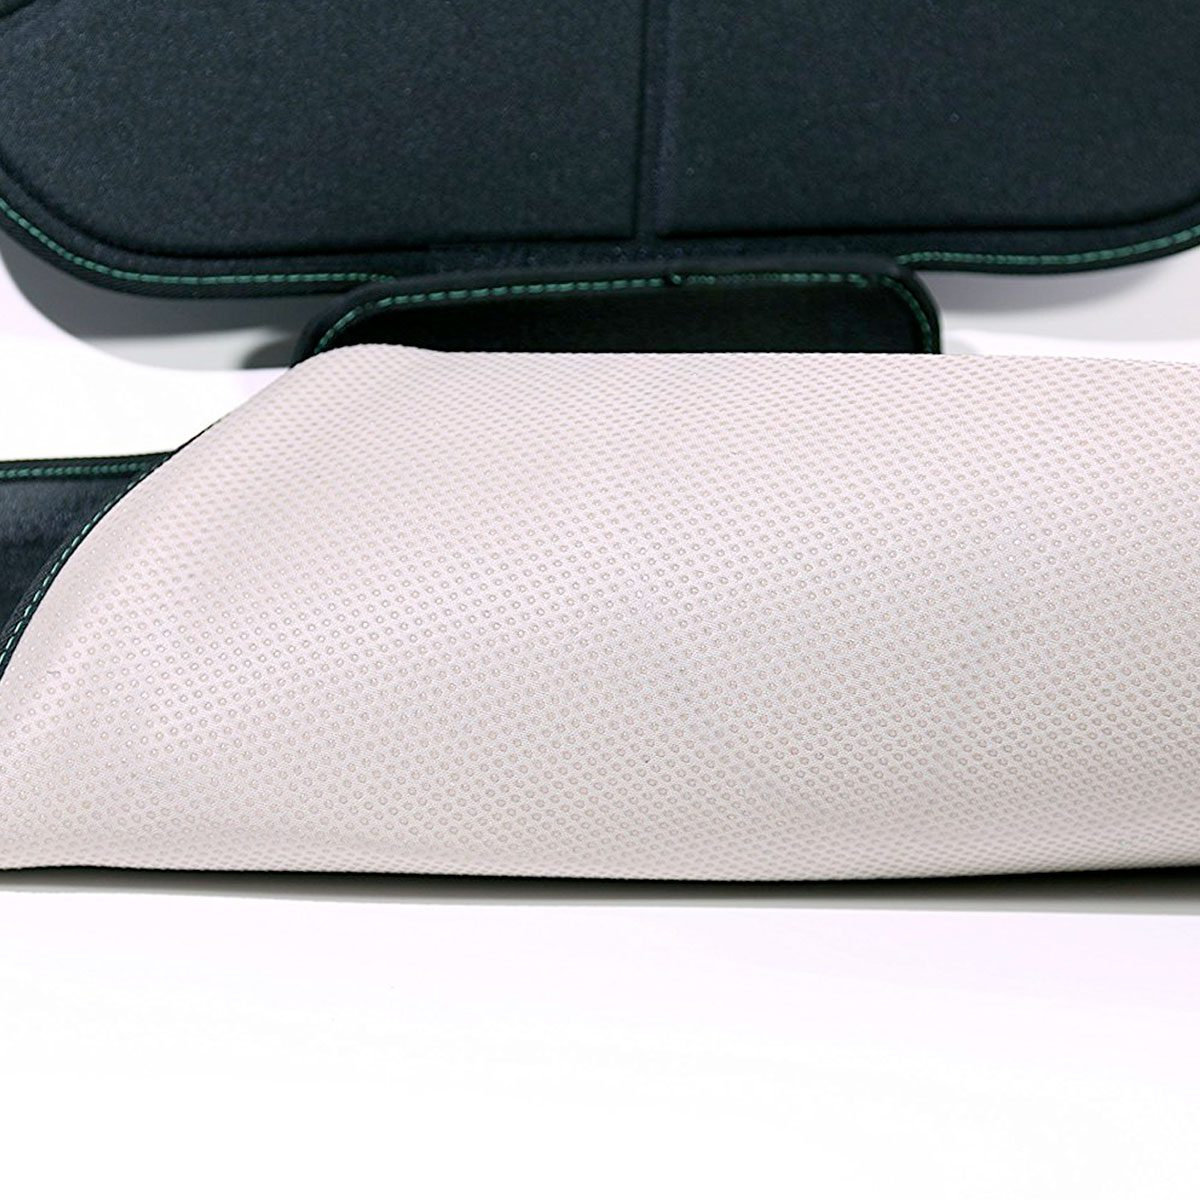 Extra thick padding lines the car seat protector